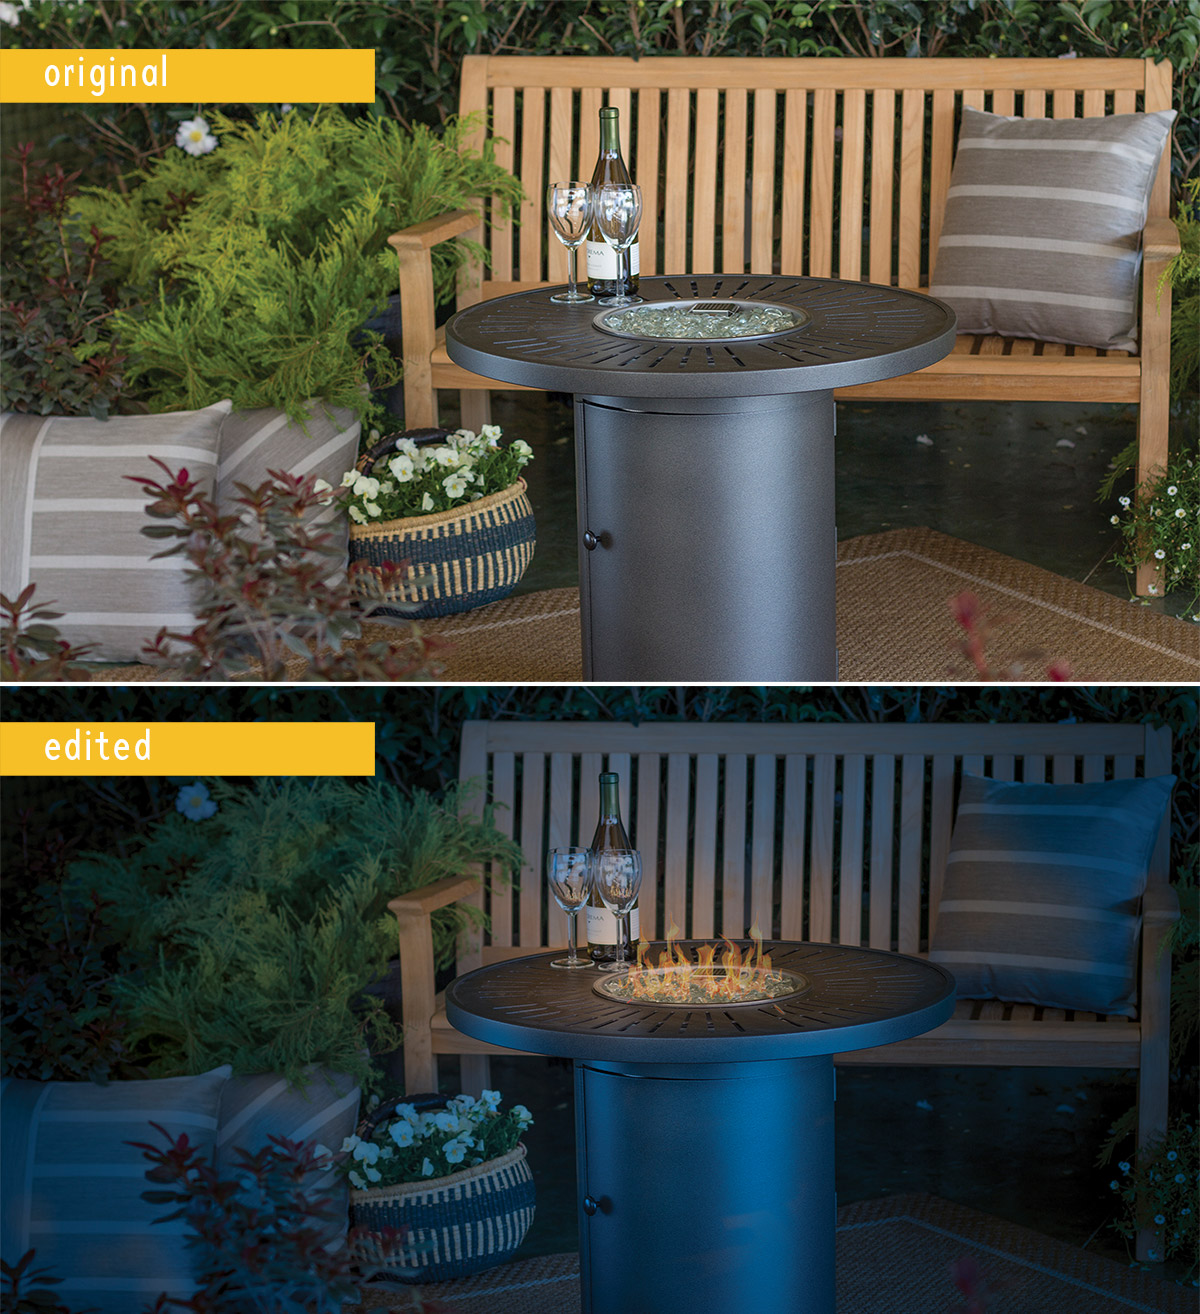 OutdoorLiving - Photoshopping